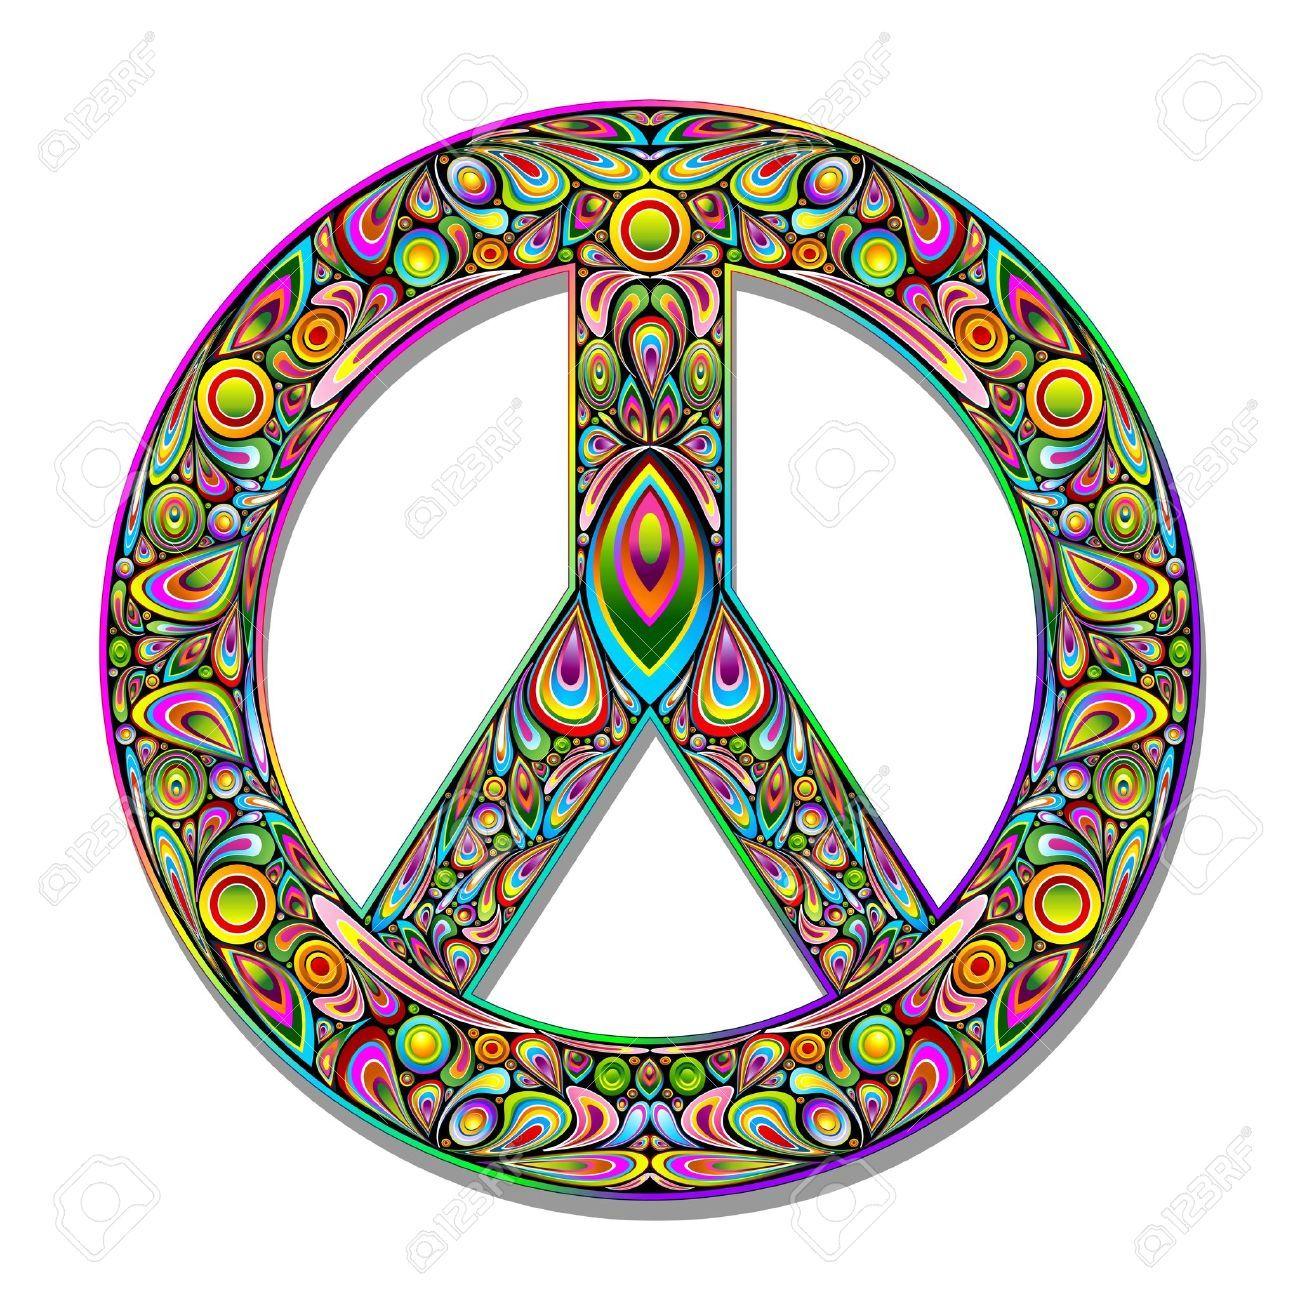 Peace sign tattoos google search tattoos pinterest peace peace sign tattoos biocorpaavc